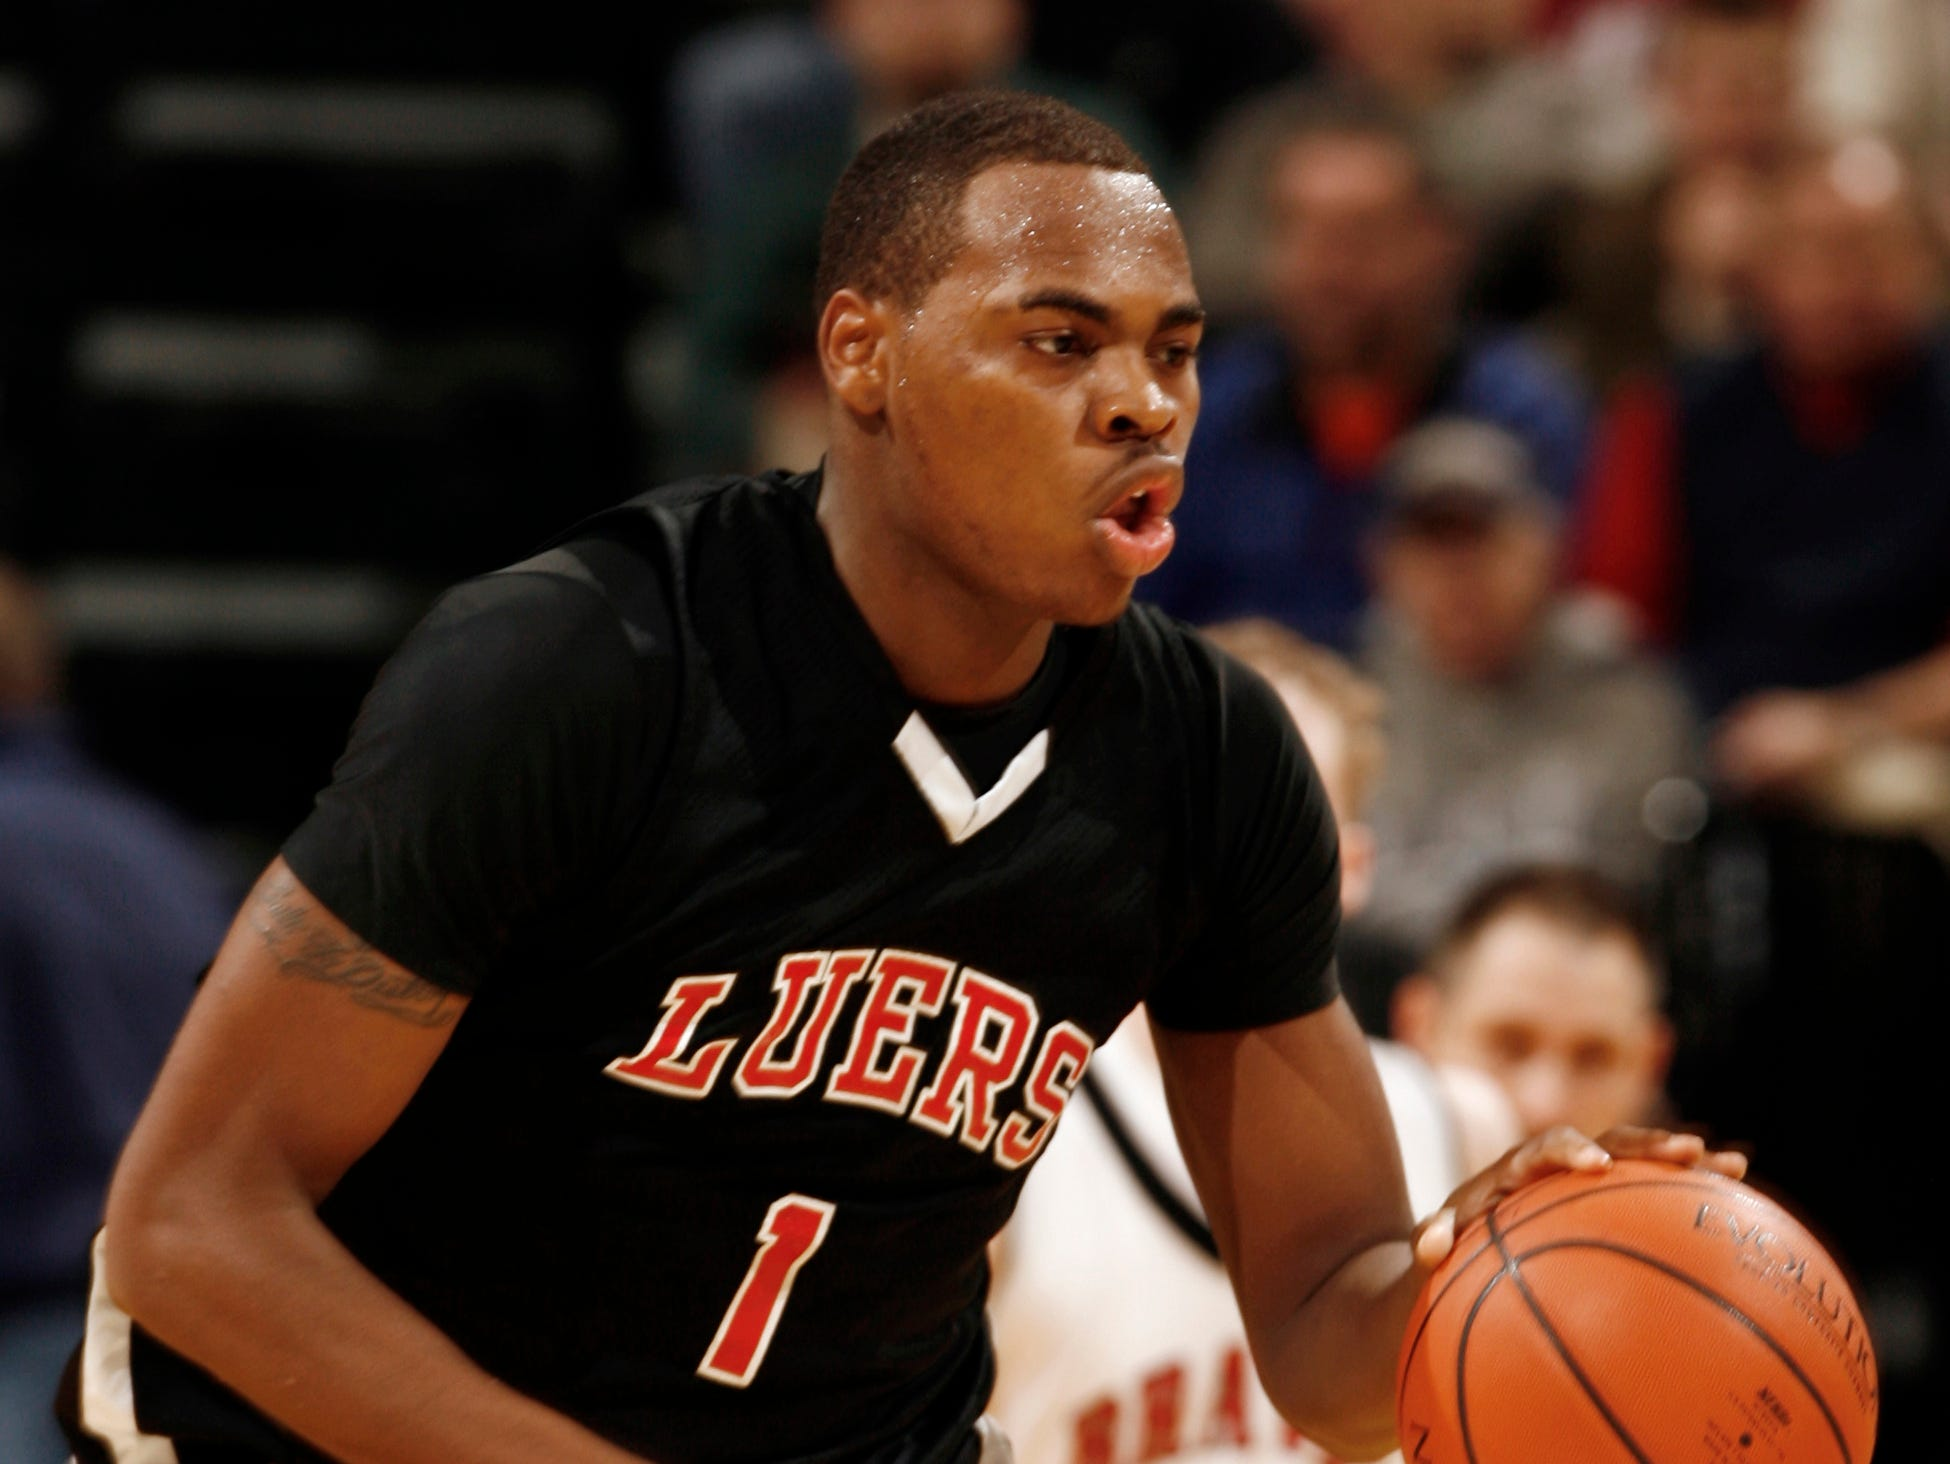 Deshaun Thomas, Fort Wayne Bishop Luers, finished his high school career in 2010 with 3,018 points.